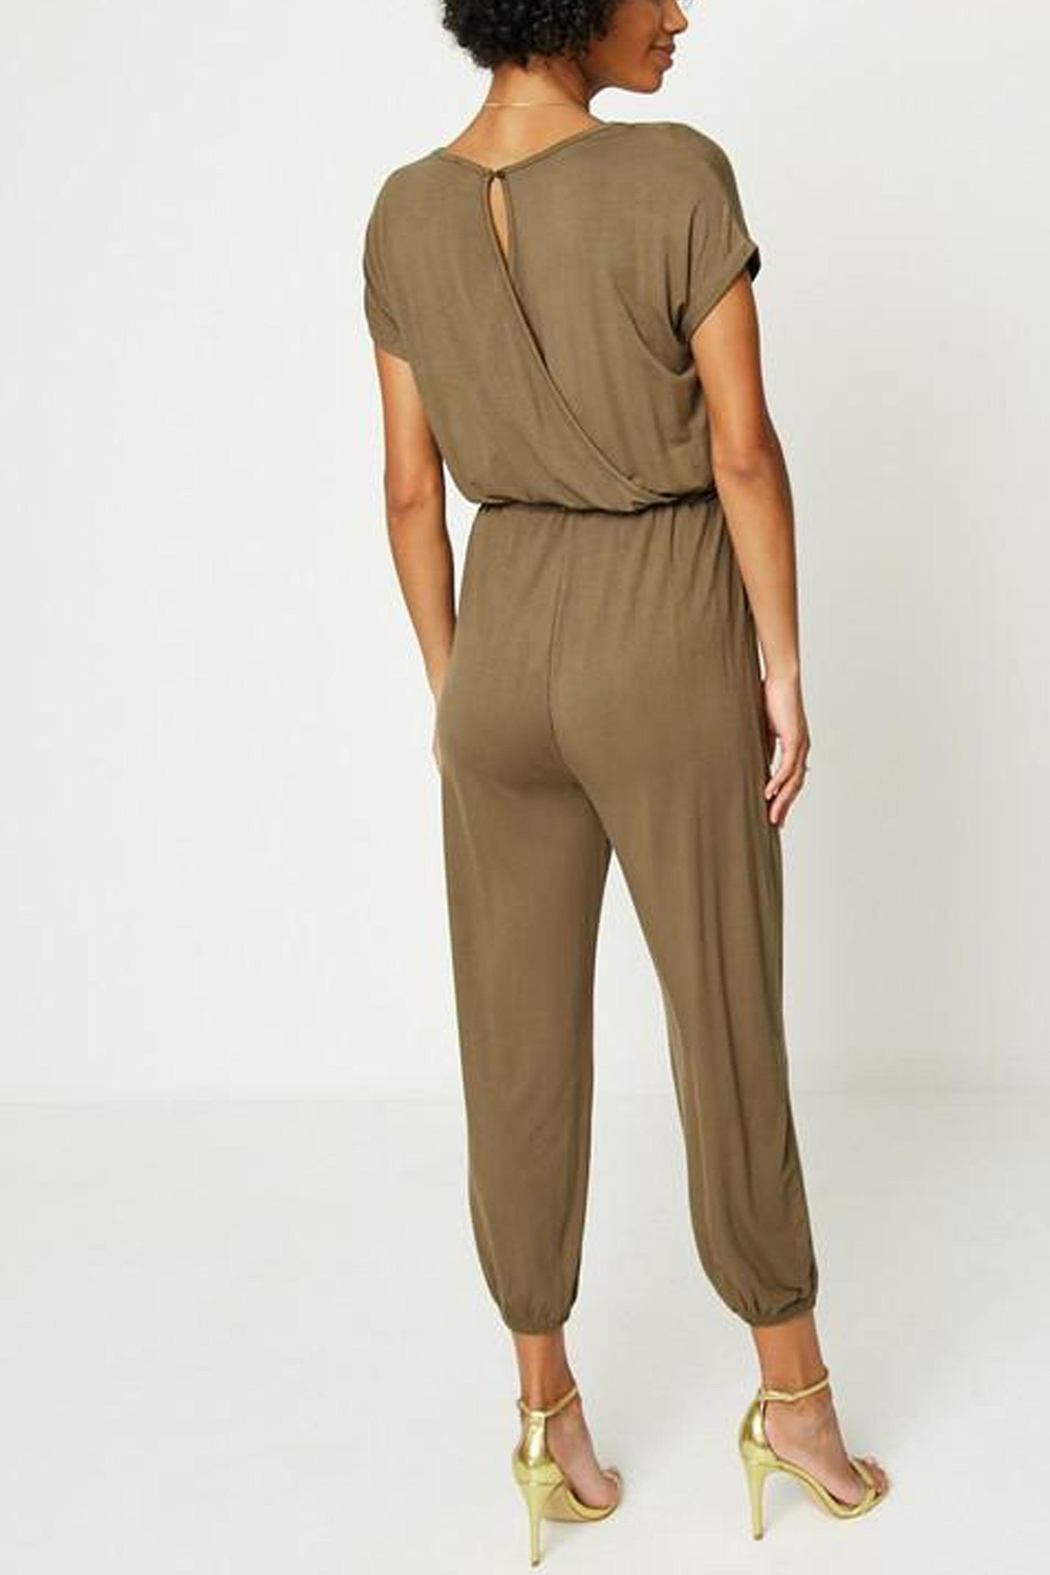 Hayden Los Angeles Olive Lounge Jumpsuit - Back Cropped Image